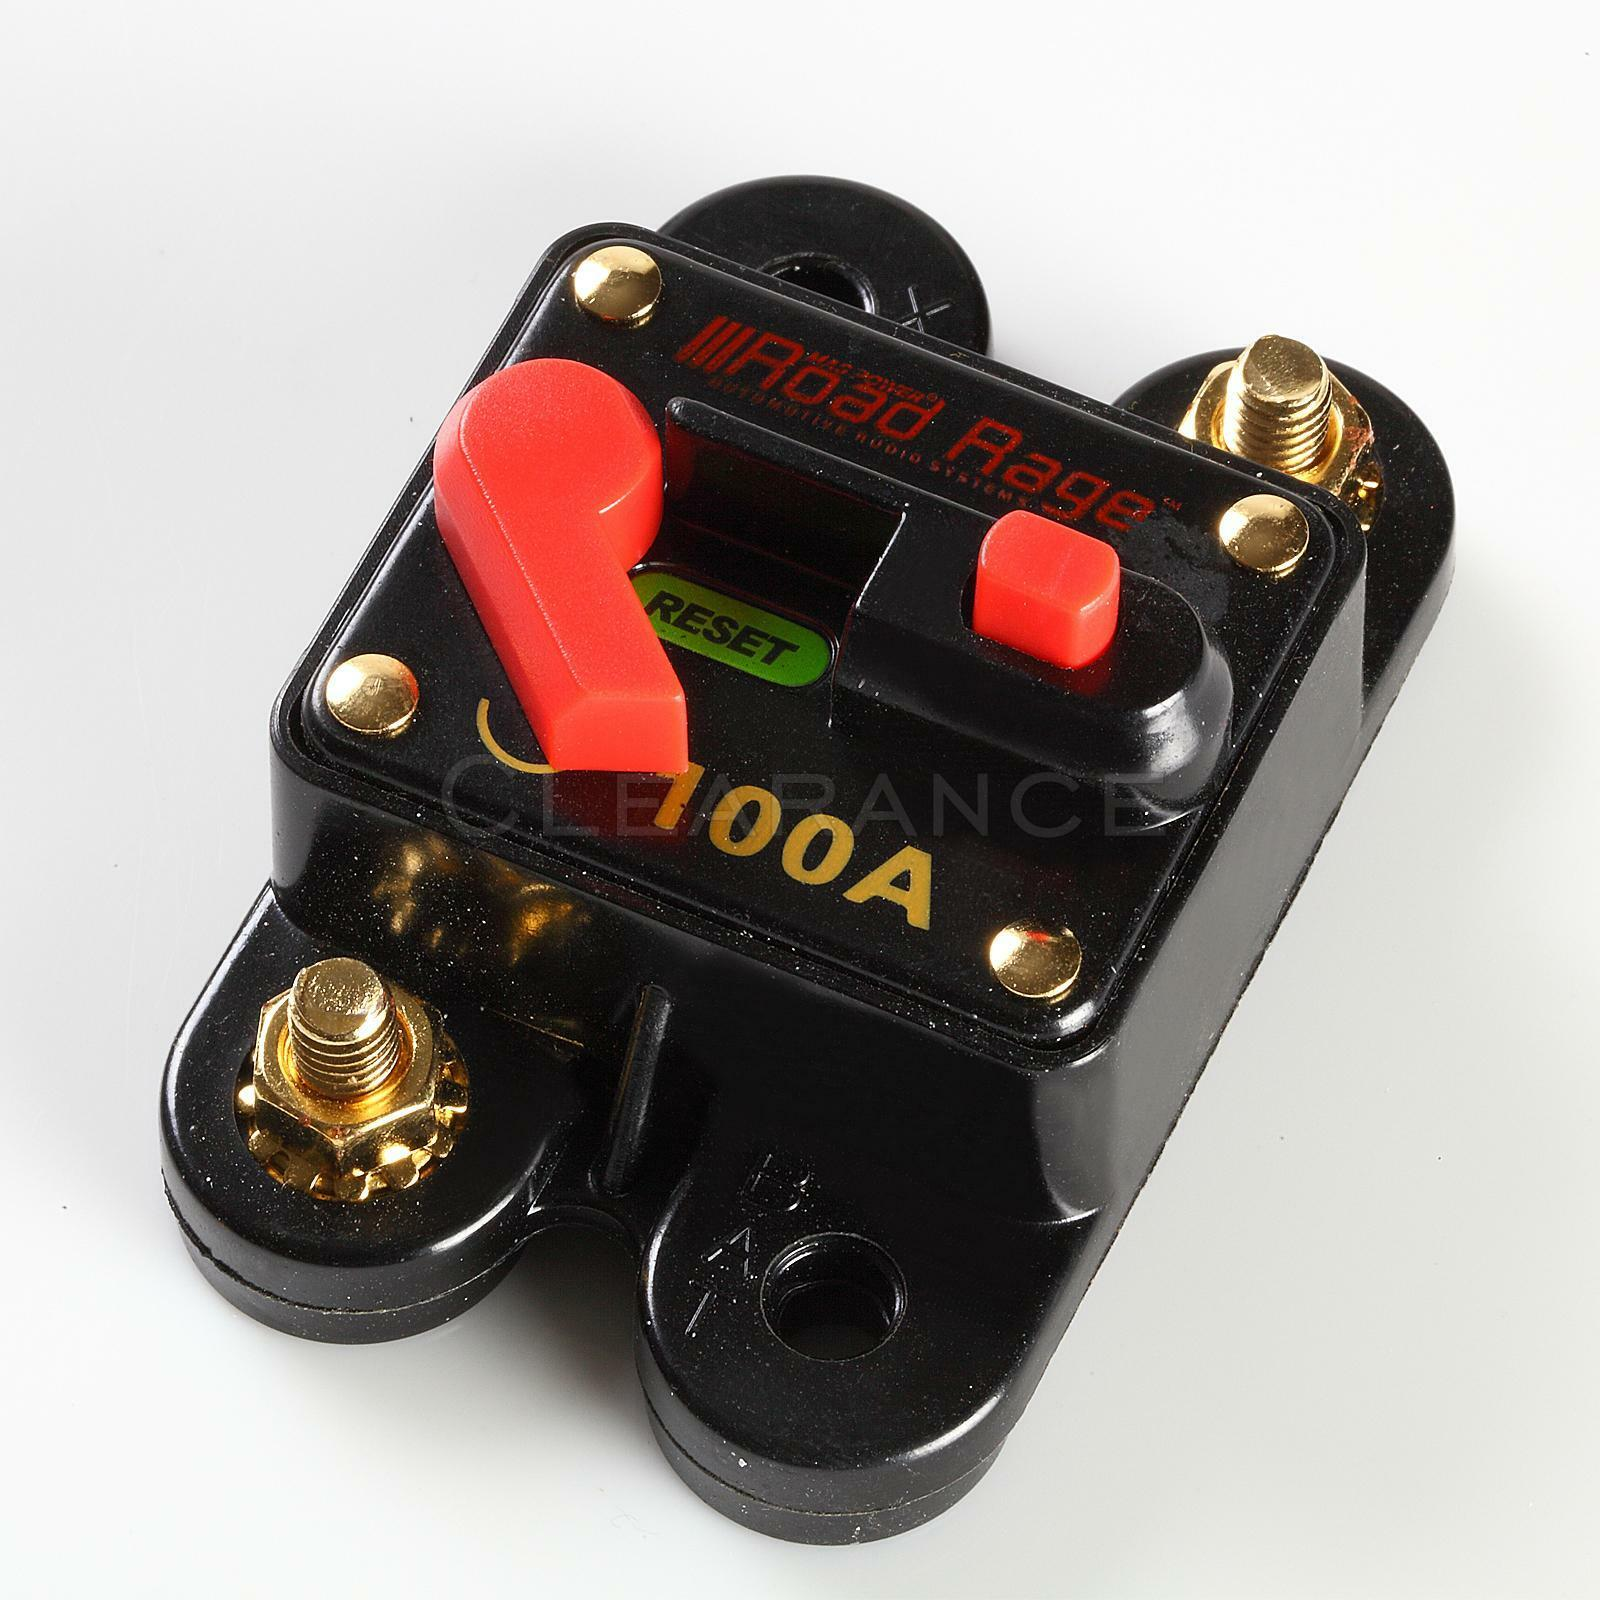 12v Car Auto Boat Audio Fuse High Power 100 Amp Manual Reset Circuit Automotive Breaker 1 Of 3free Shipping